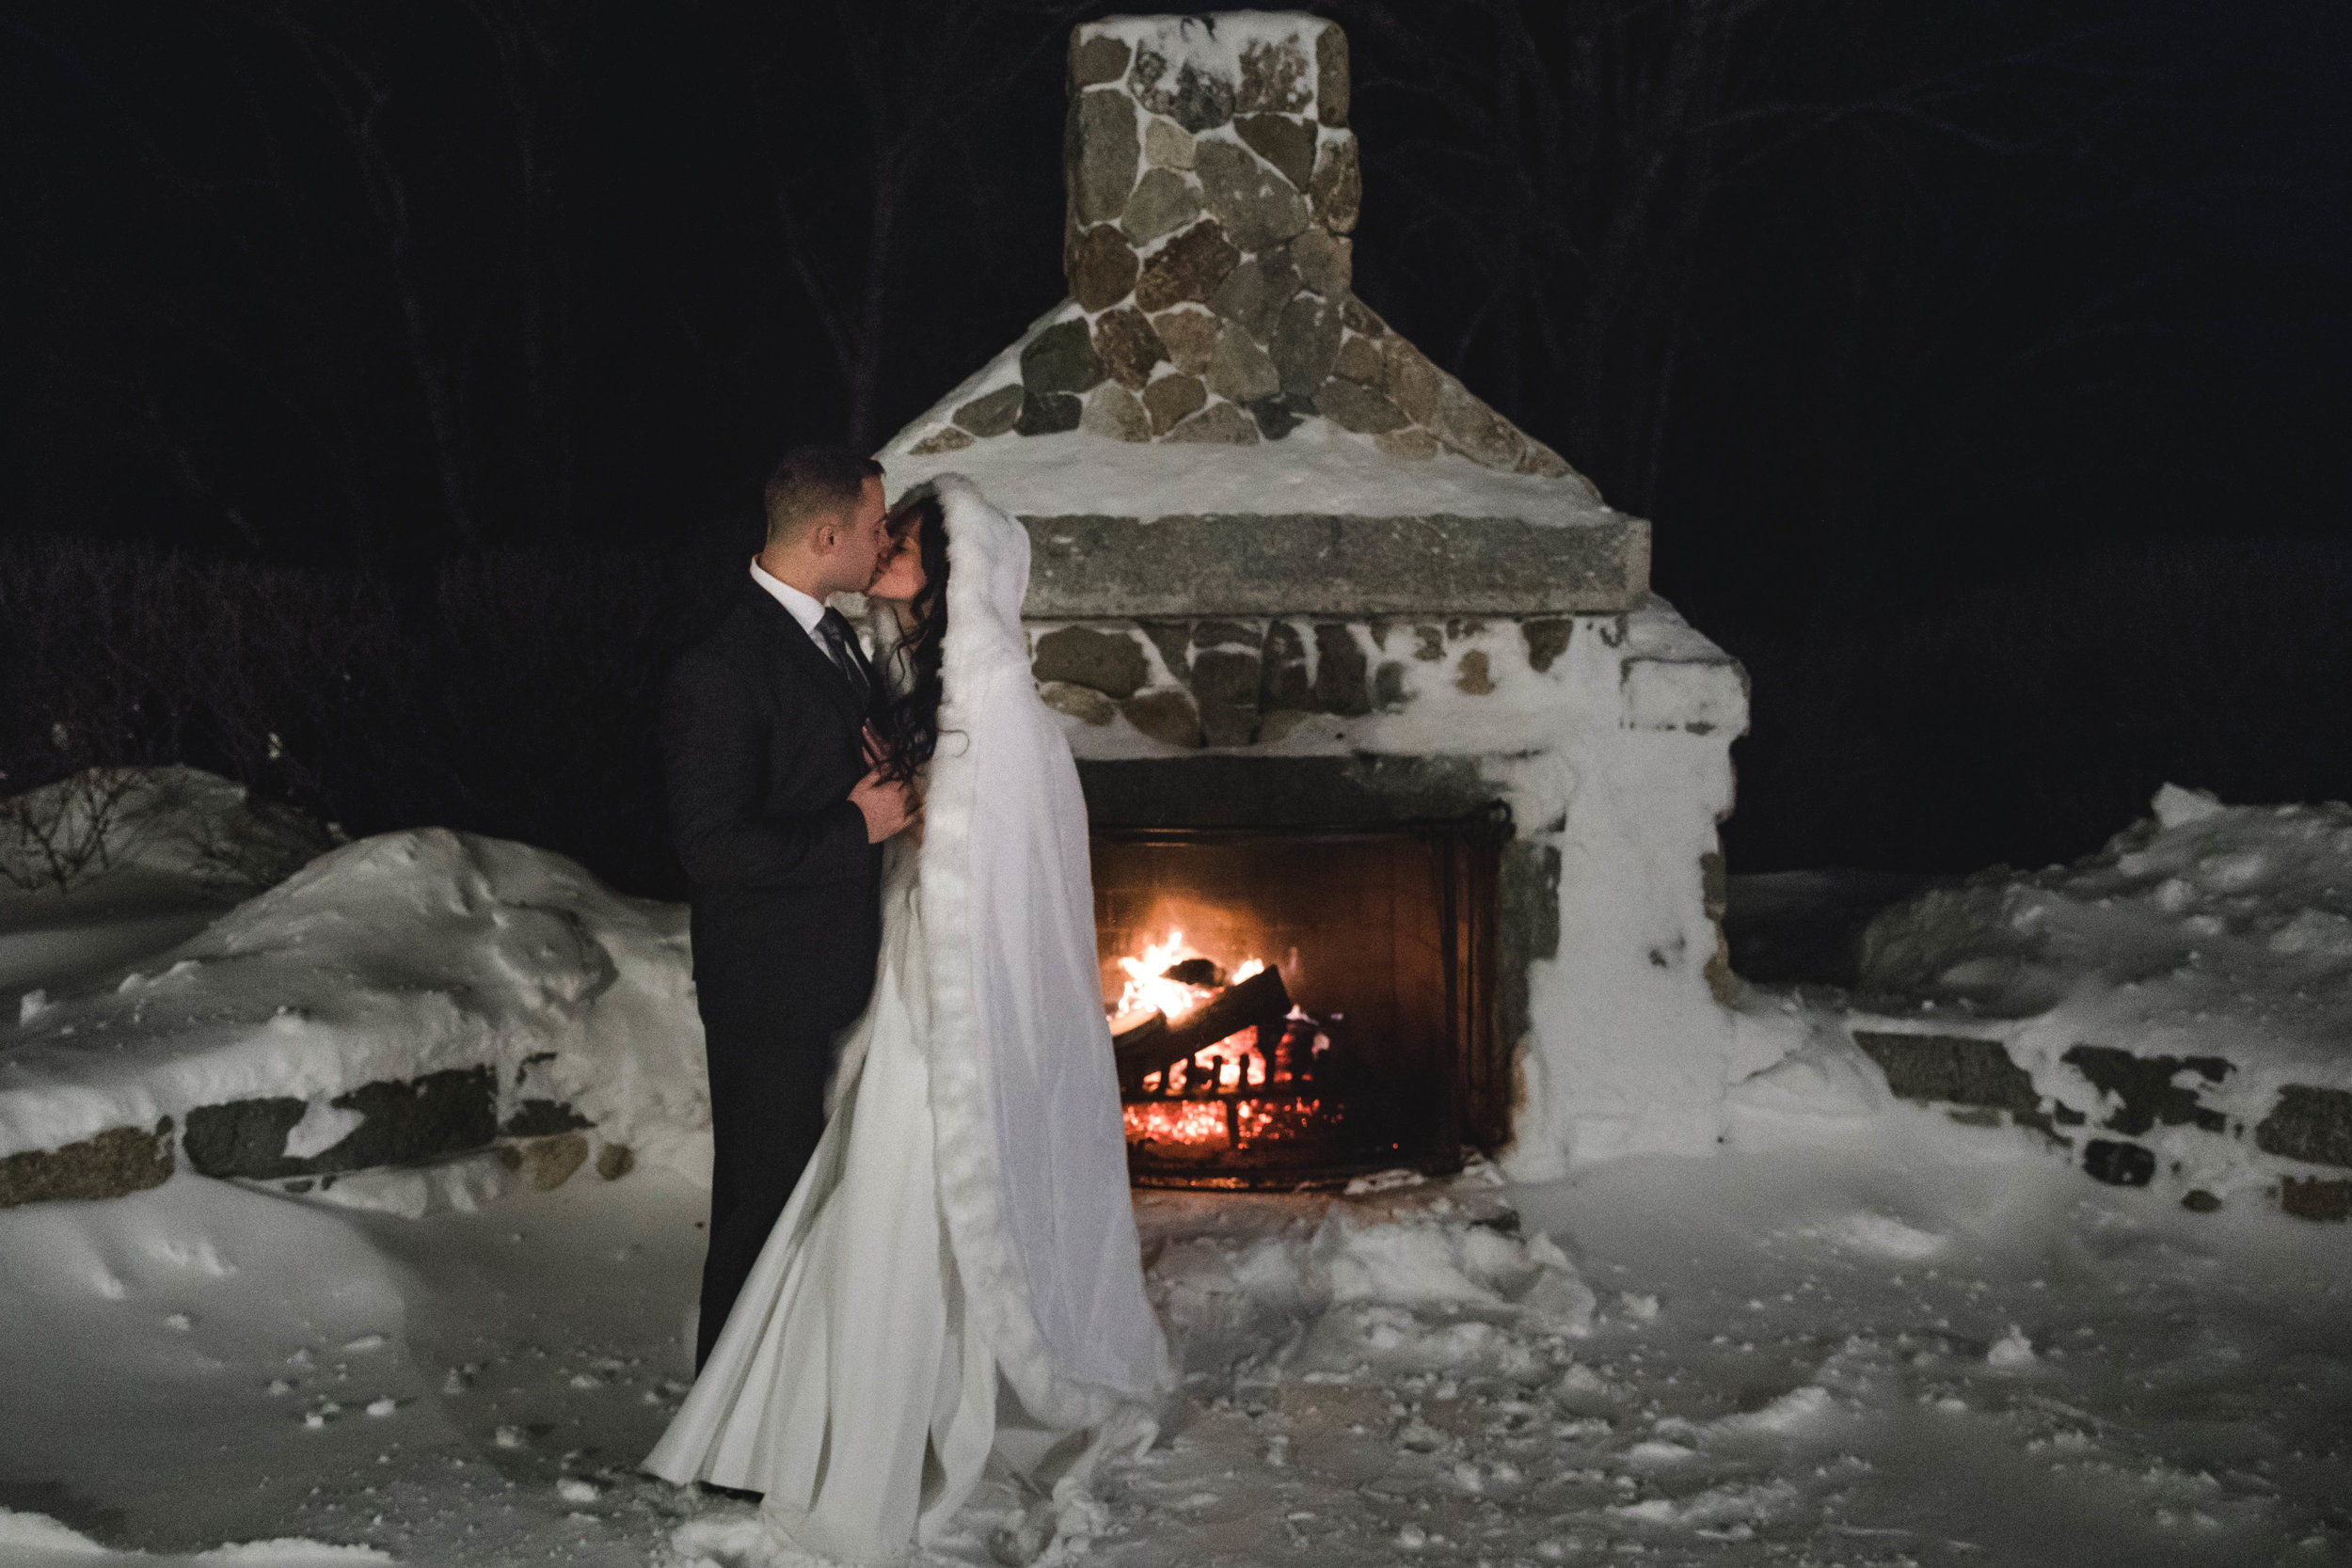 harrington farm outdoor fireplace at winter wedding with bride and groom